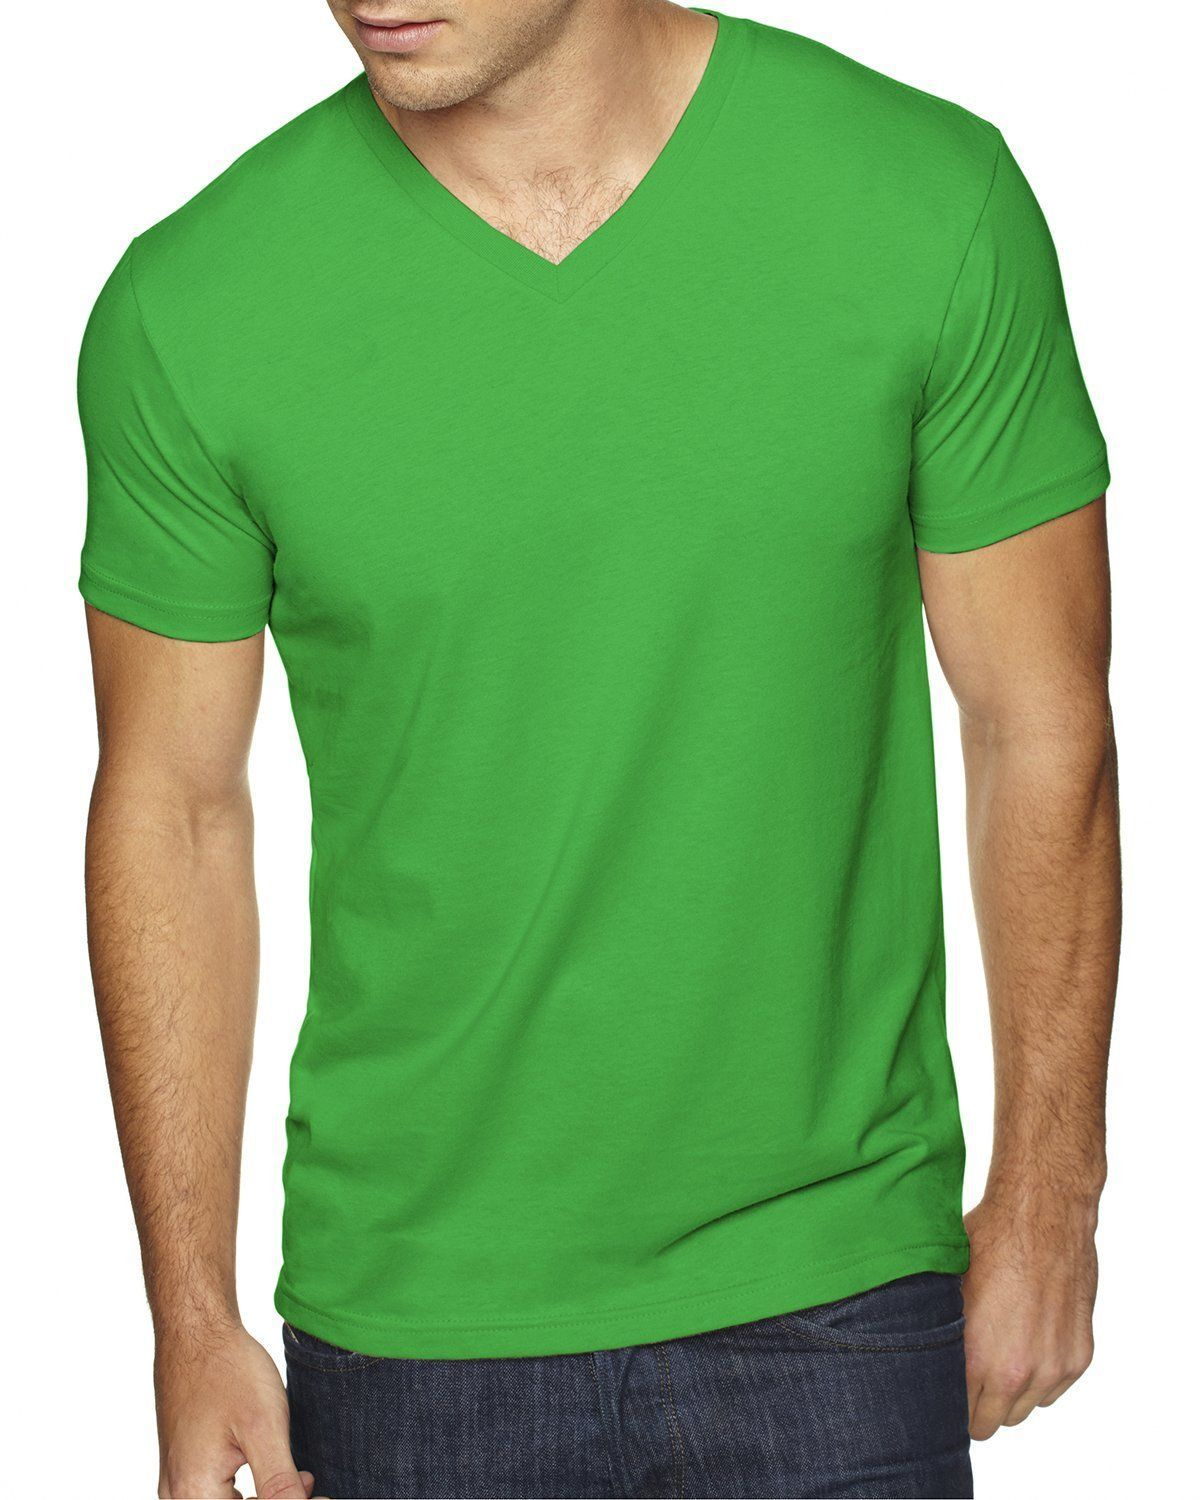 2 Pack Next Level Apparel 6440 Mens Premium Fitted Sueded V-Neck Tee